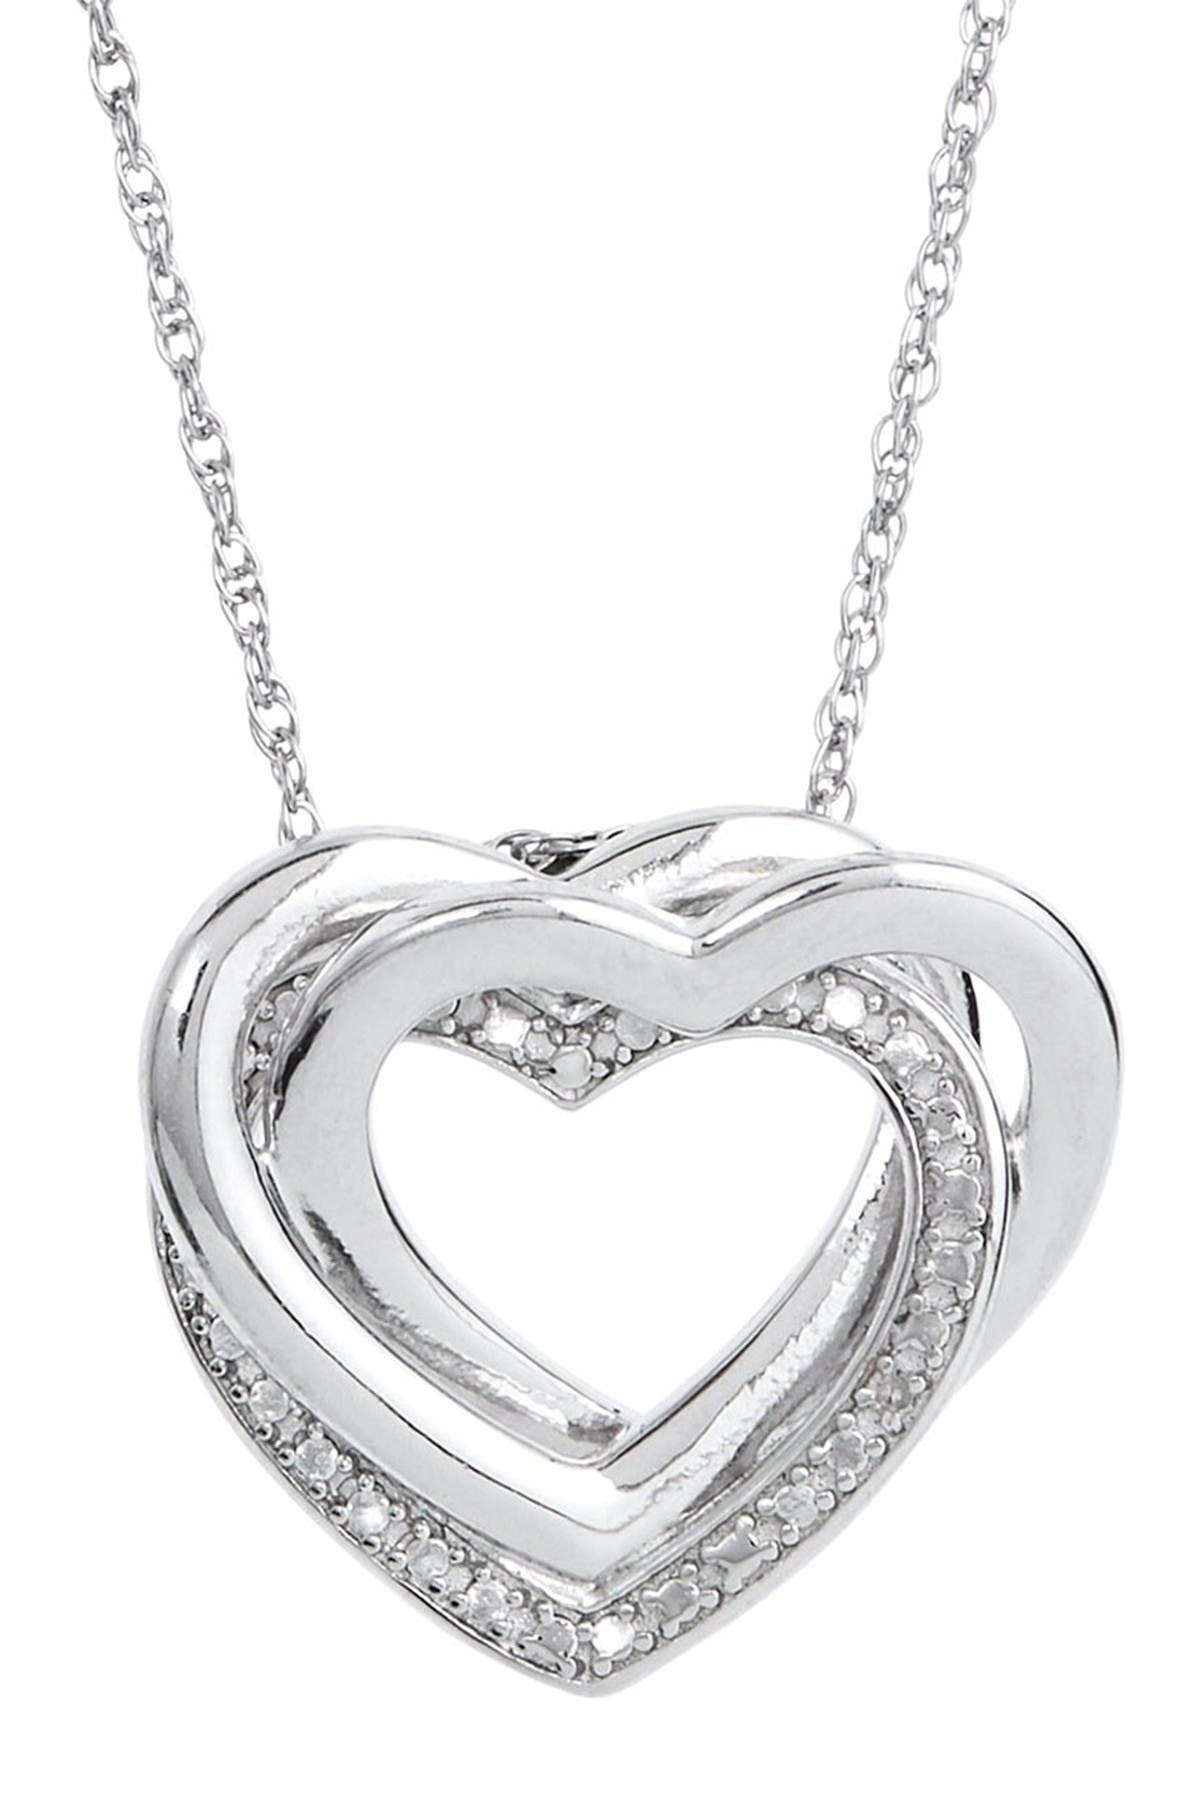 Image of Savvy Cie Sterling Silver Diamond Interlocking Necklace - 0.01 ctw